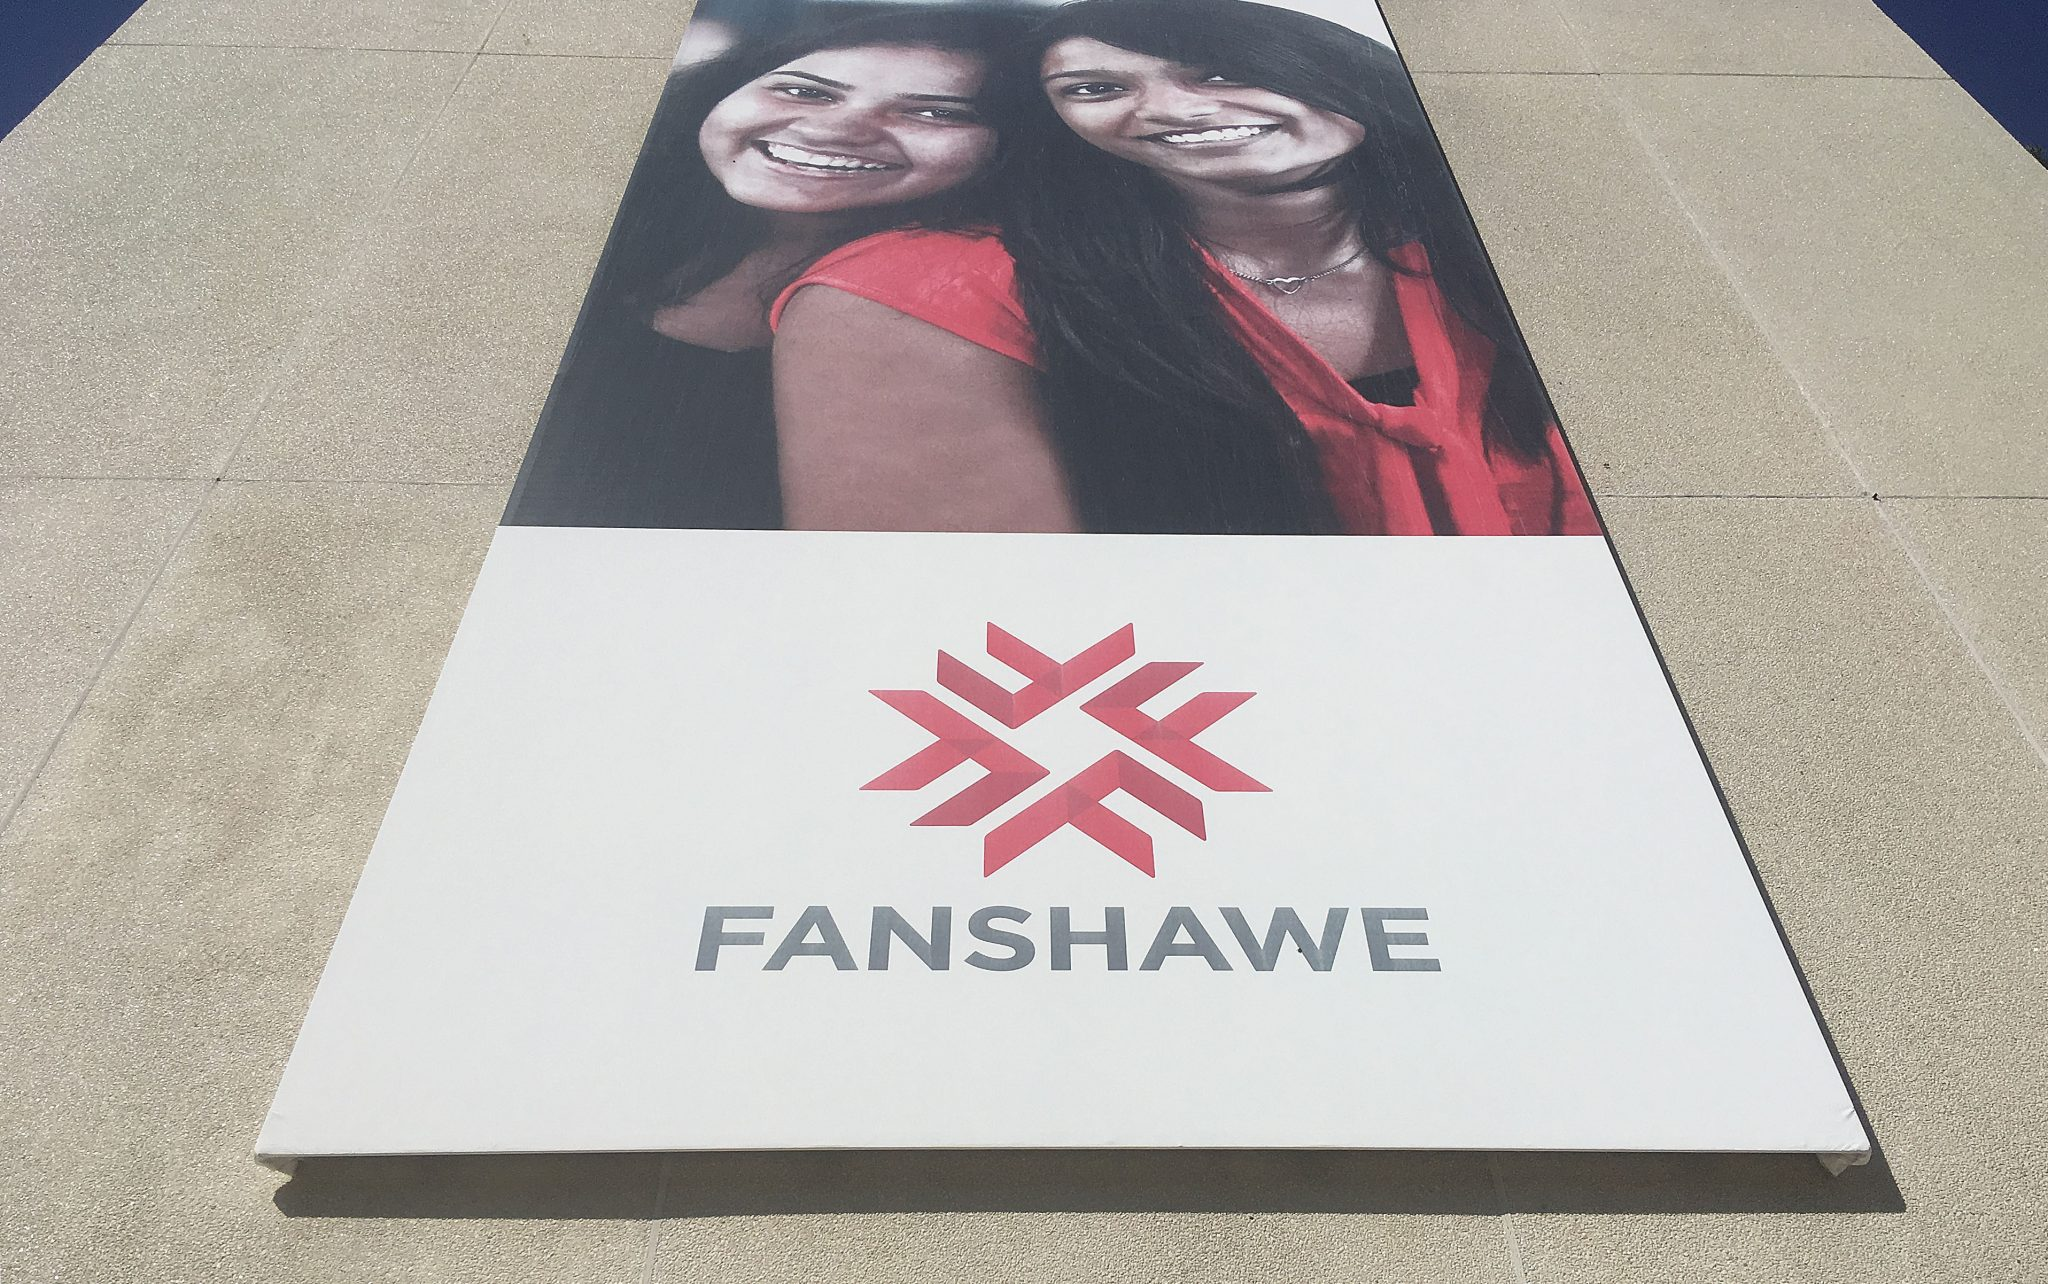 fanshawe college sign